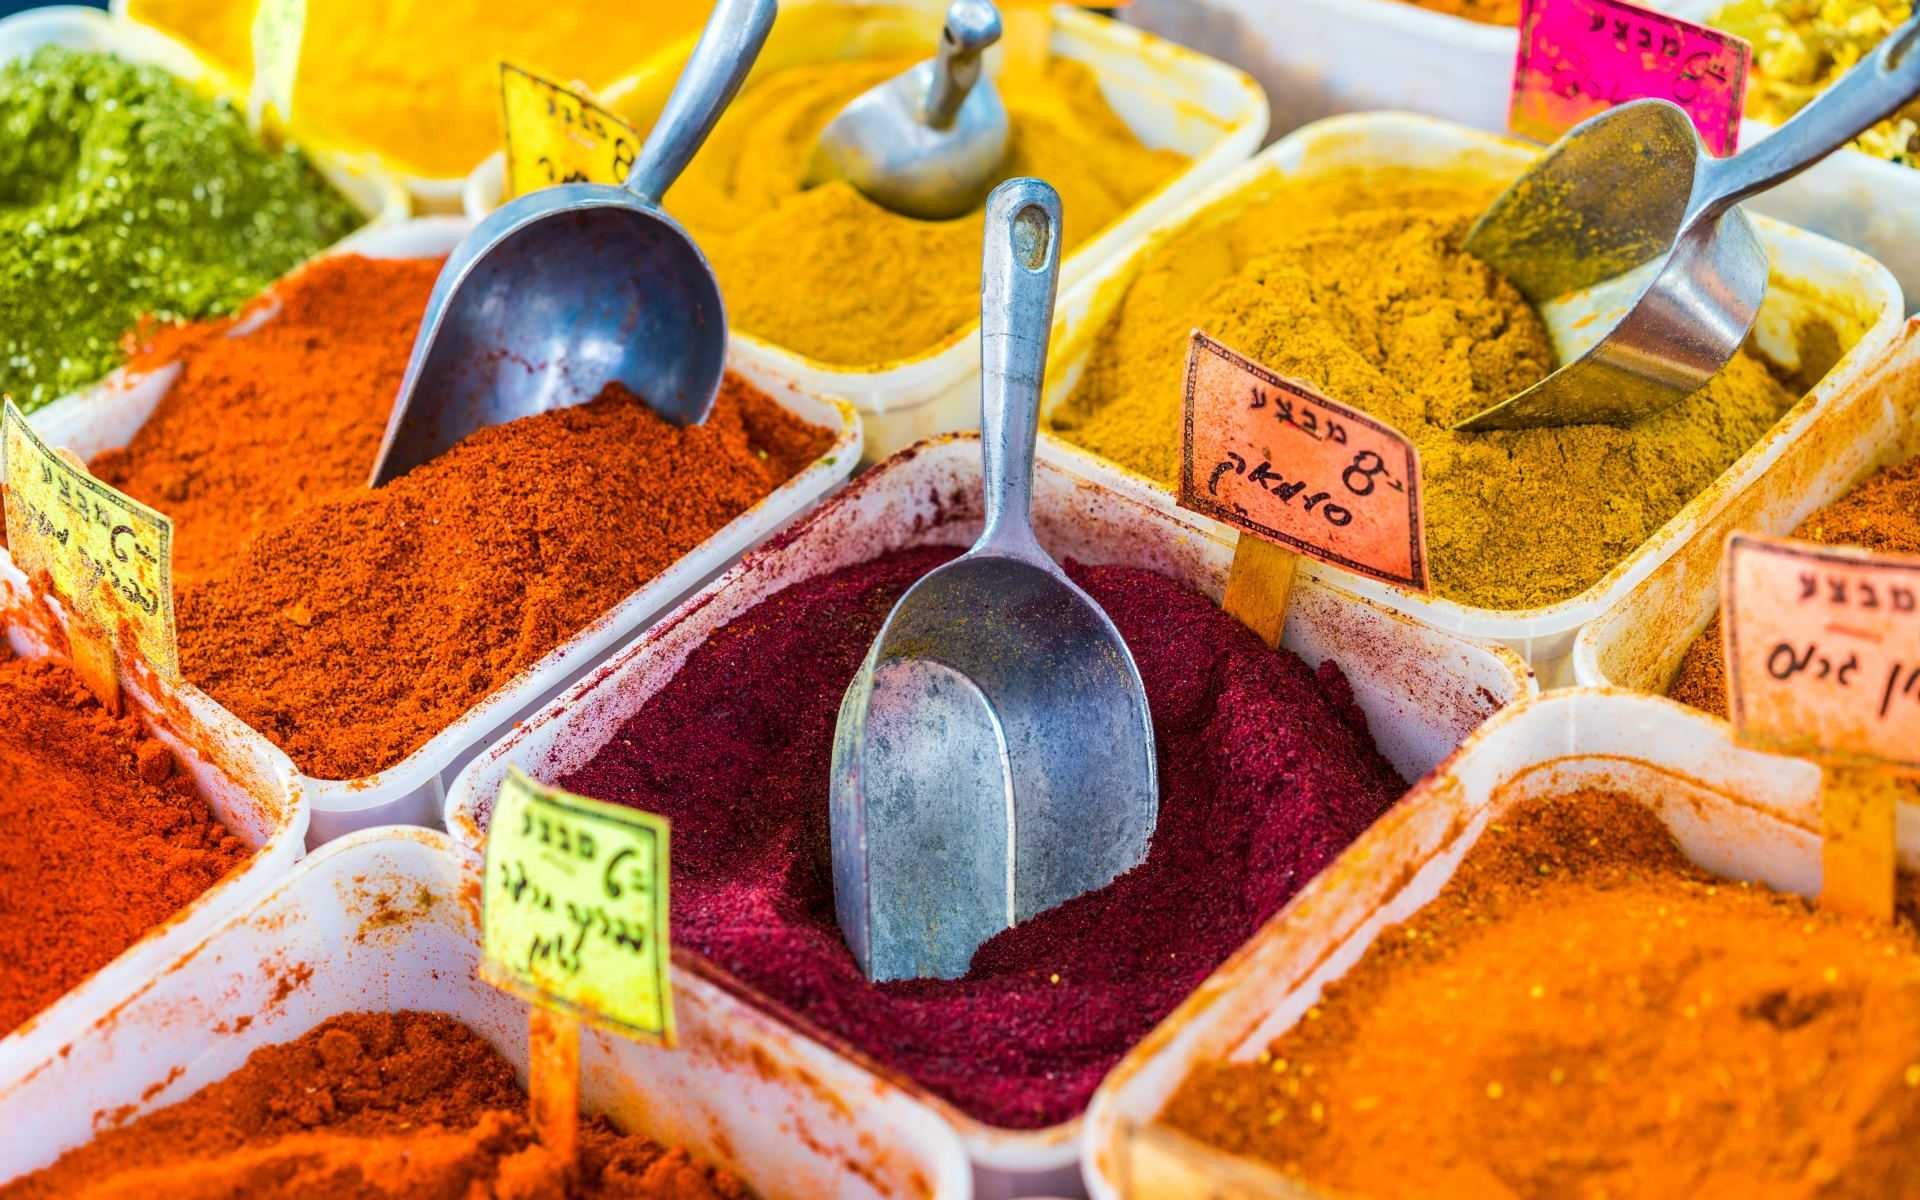 Open bins of colorful red, orange, yellow, and green spices with scoops and price tags